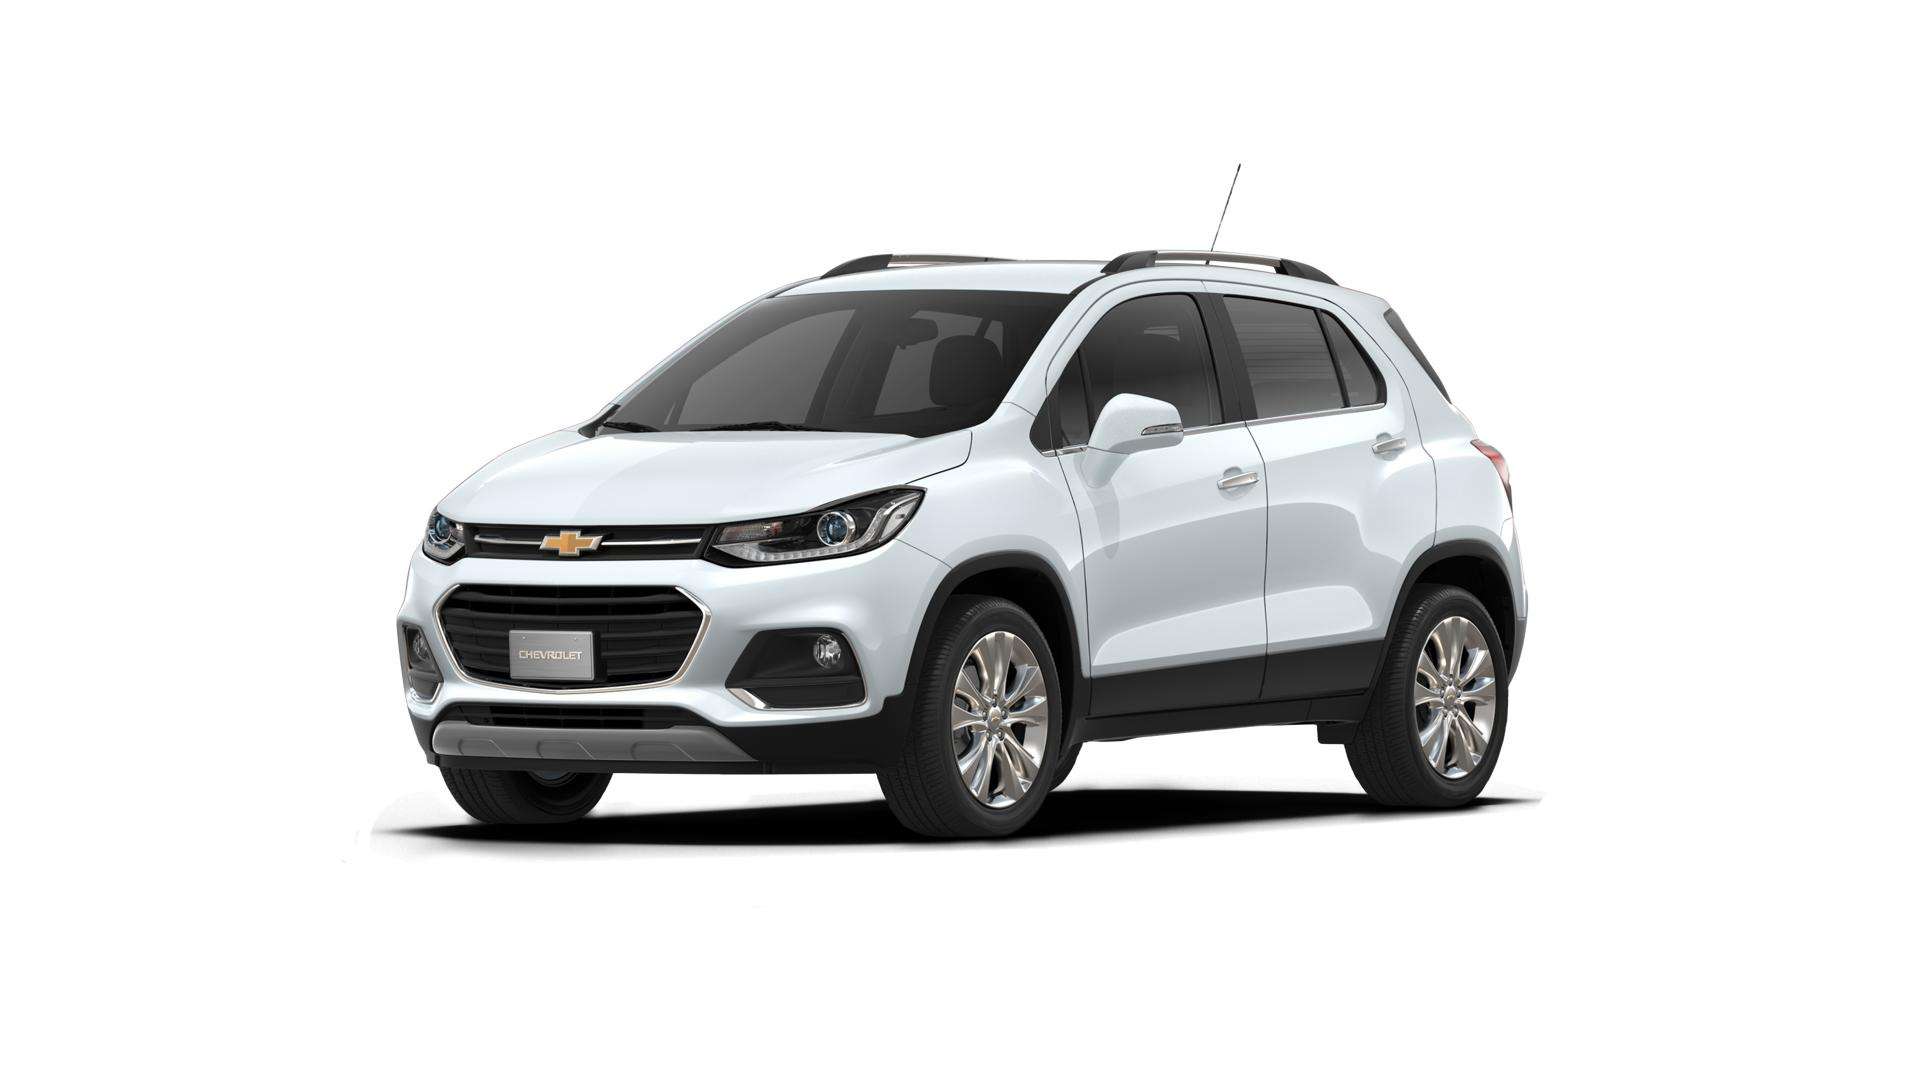 CHEVROLET TRACKER PREMIER TURBO 1.4L ECOTE 2019